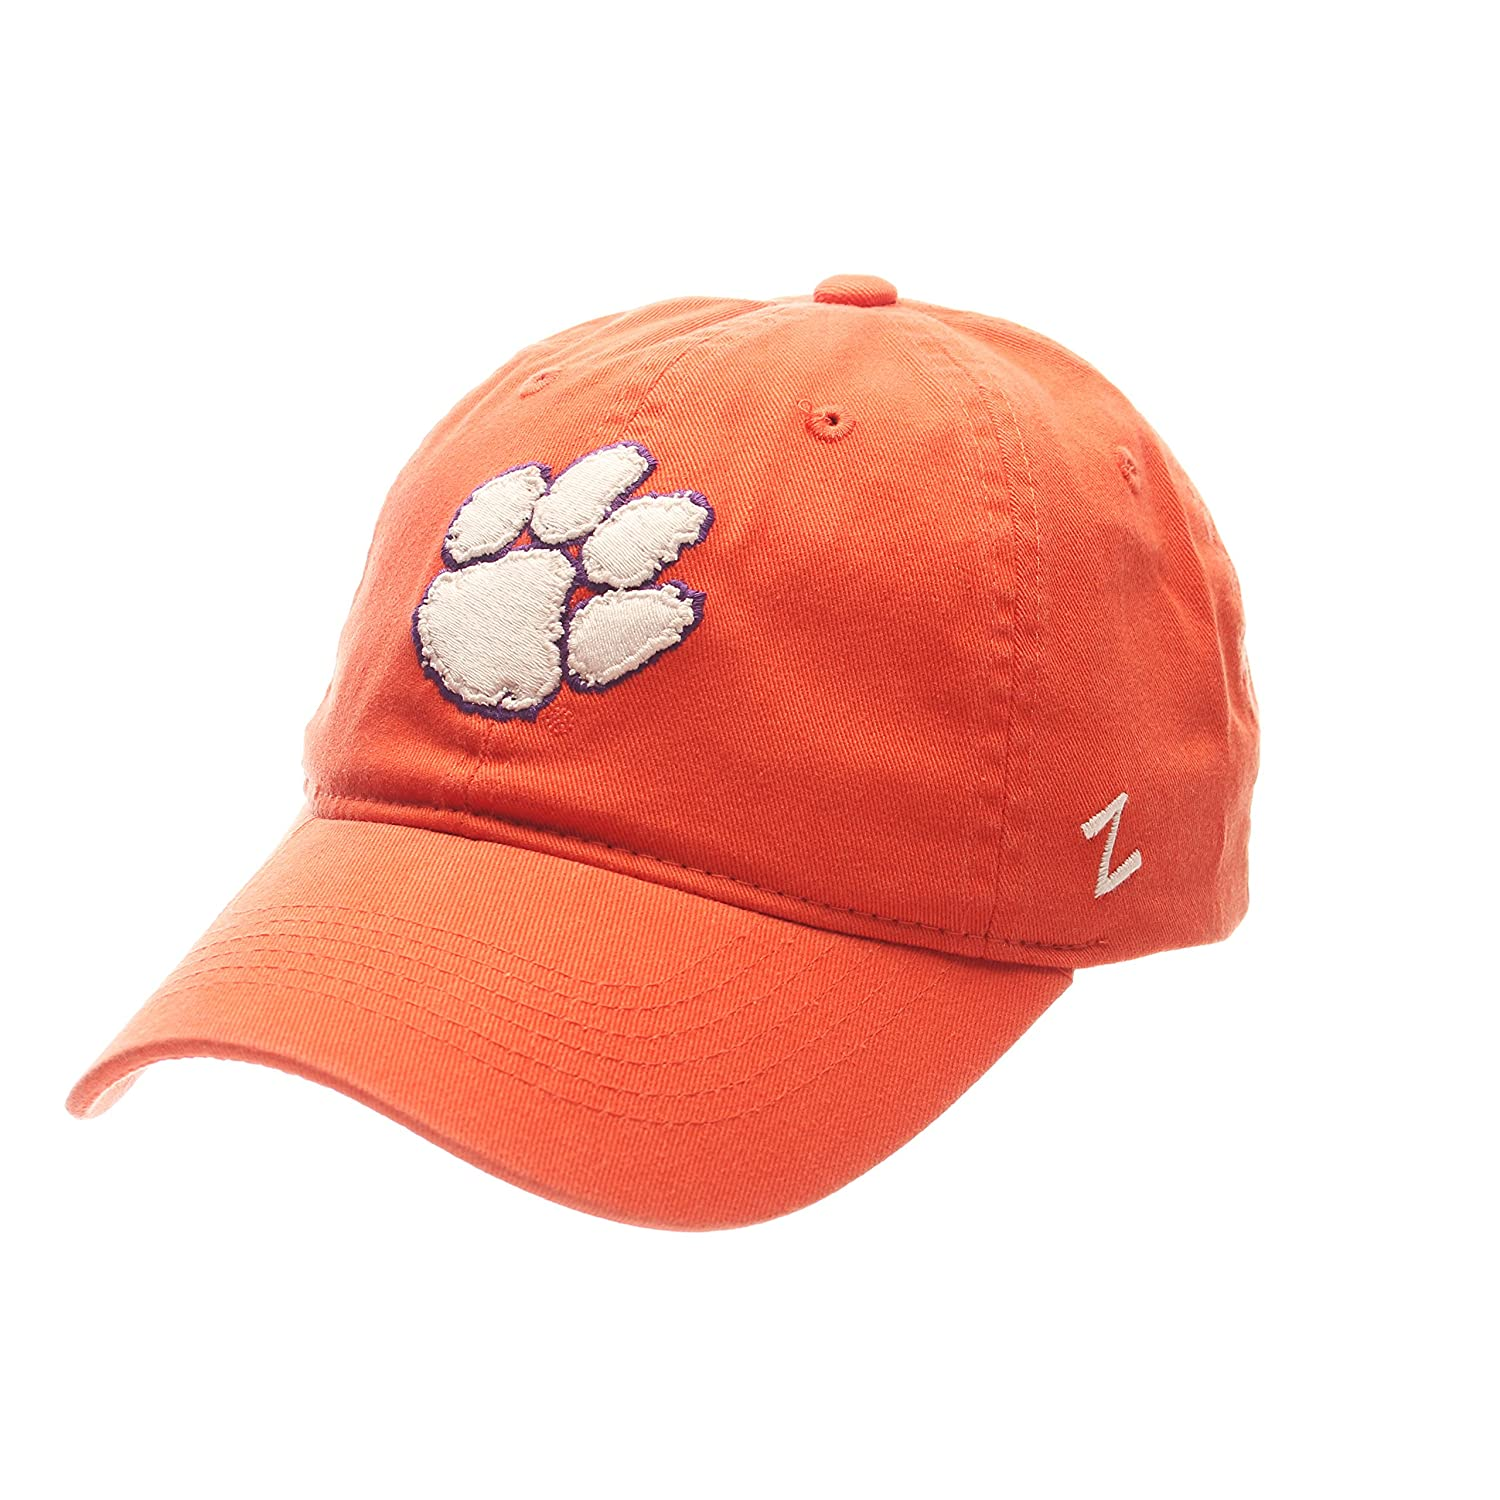 NCAA Clemson Tigers Mens Scholarship Relaxed Hat Team Color Adjustable Size